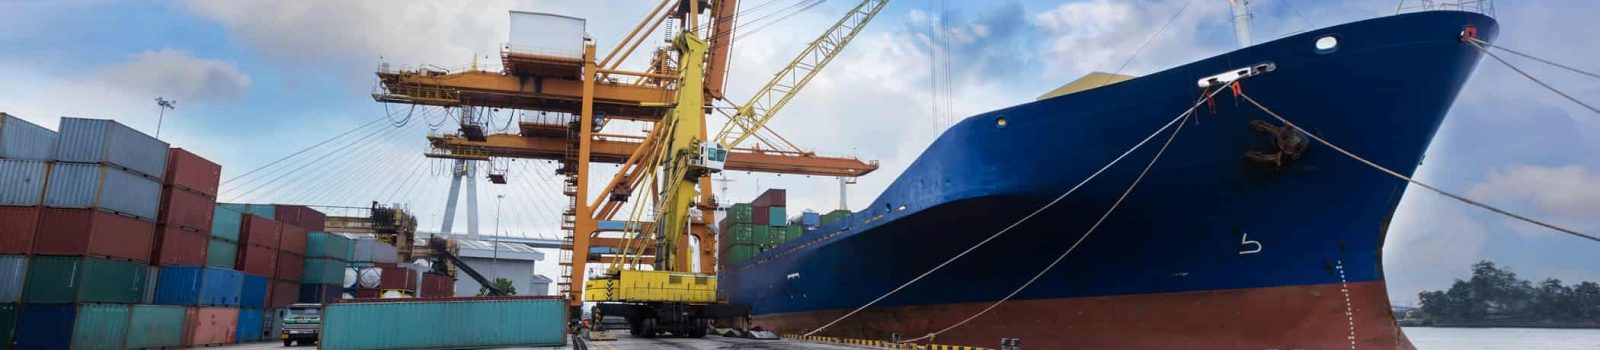 Industrial Container Cargo freight ship with working crane bridge in shipyard with truck